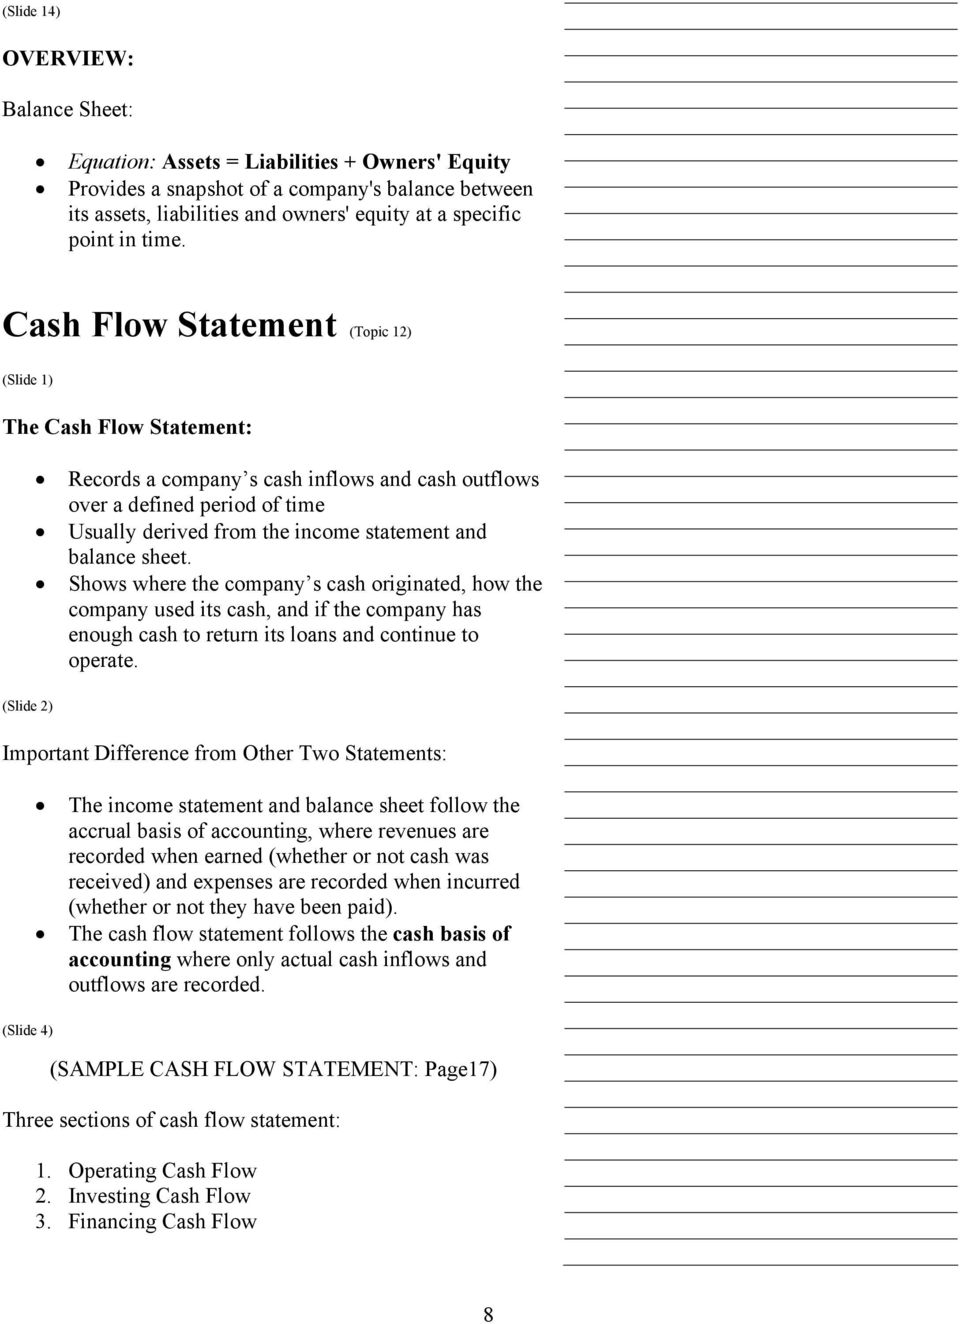 Cash Flow Statement (Topic 12) (Slide 1) The Cash Flow Statement: Records a company s cash inflows and cash outflows over a defined period of time Usually derived from the income statement and